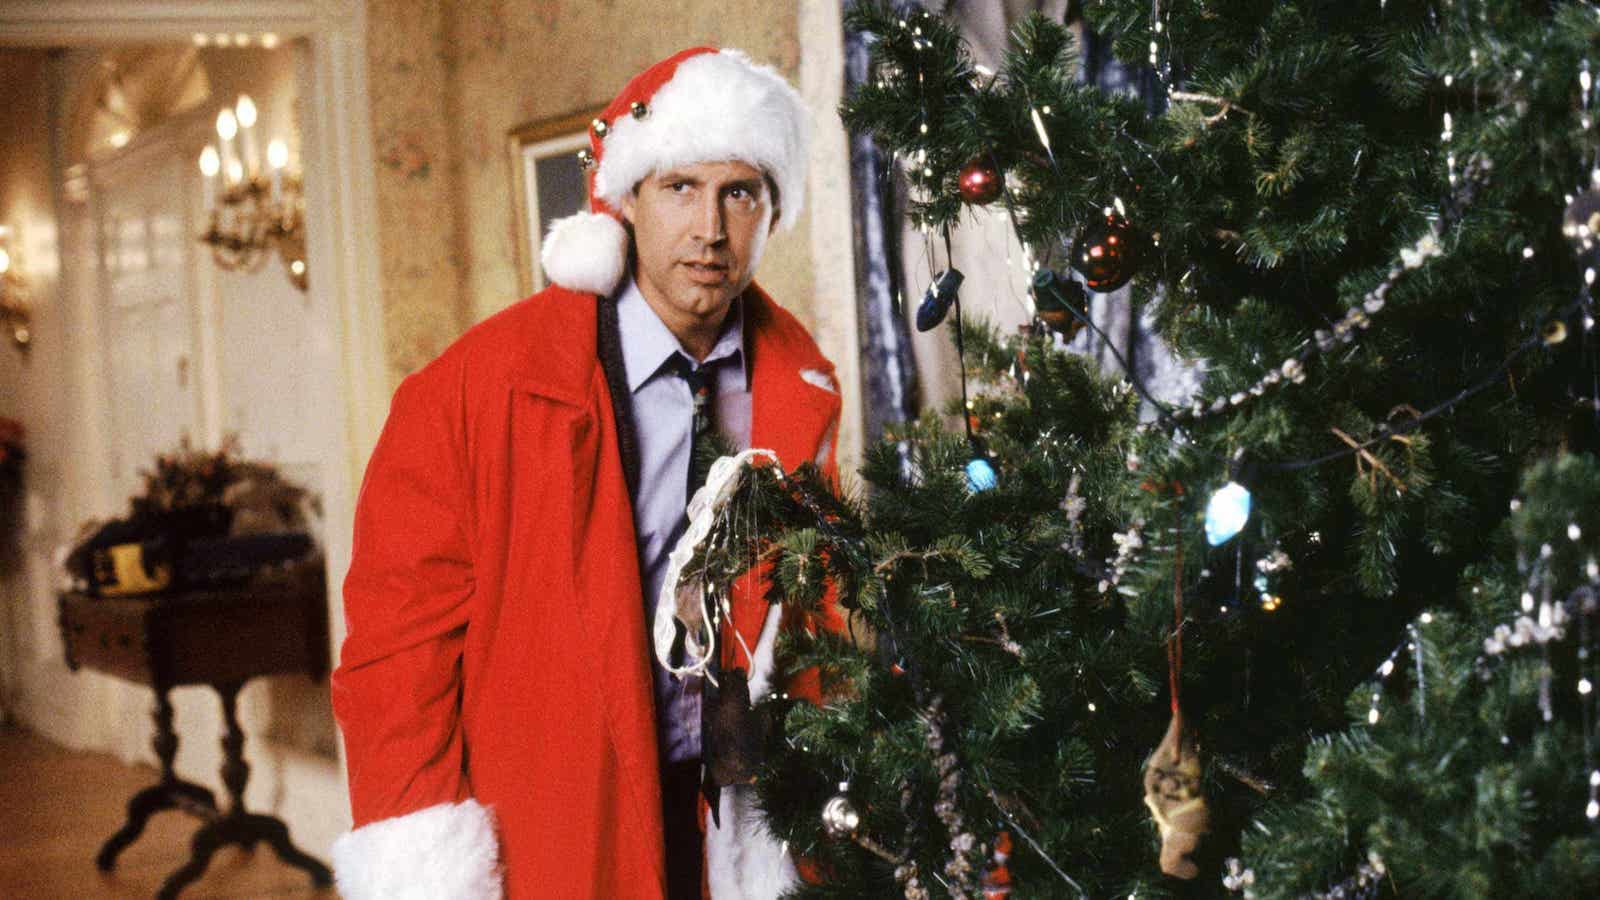 Best Classic Comedies - National Lampoon's Christmas Vacation